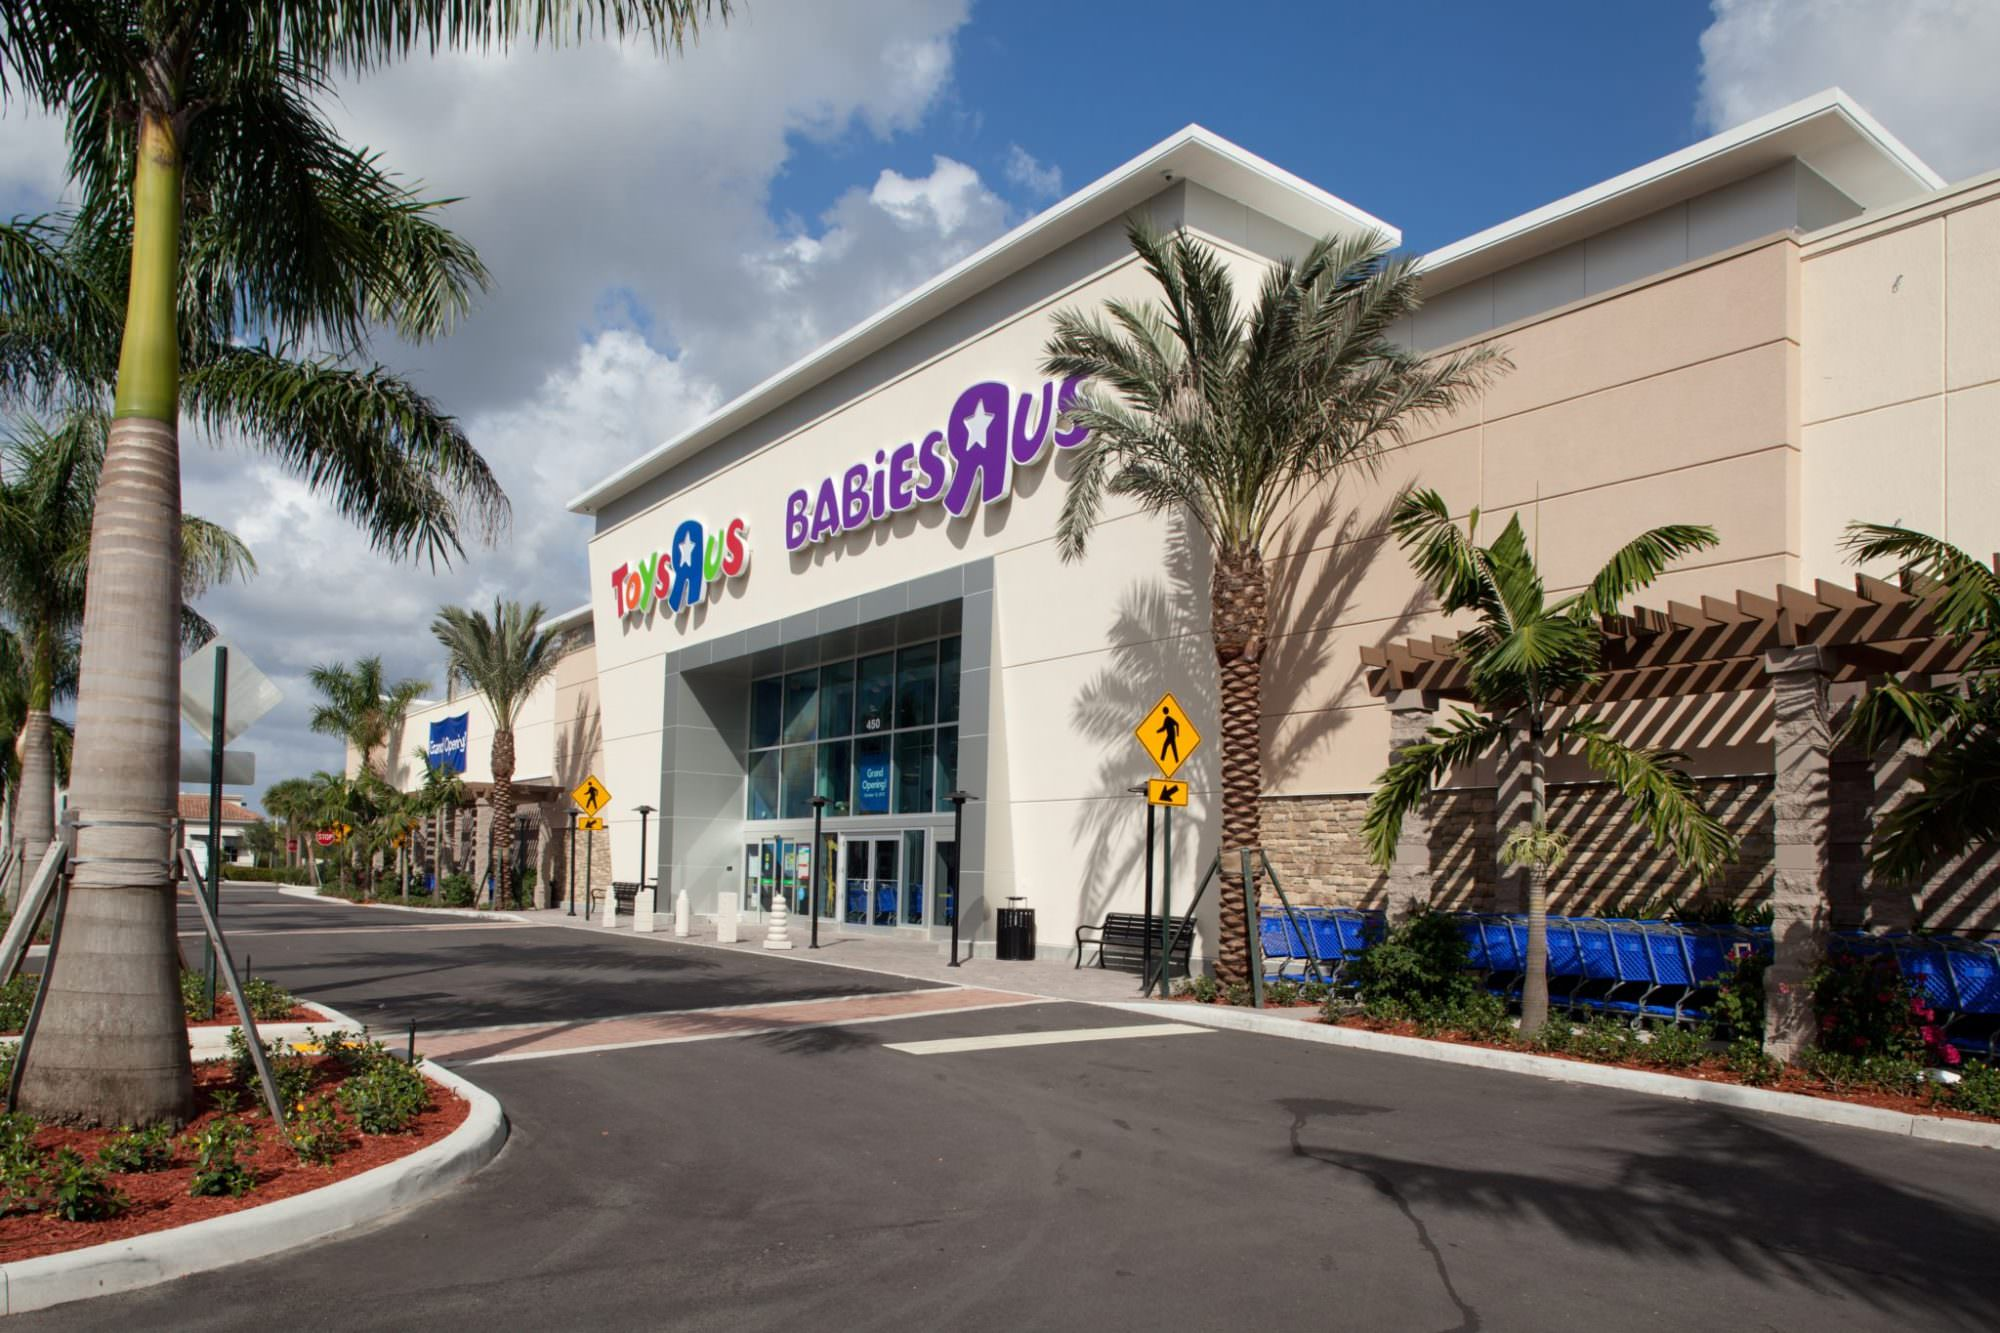 October 24th, 2012 - Royal Palm Beach, Florida: The new Toys R Us & Babies R Us store located at 450 South State Road 7 which was recently built by Pebb Enterprises.